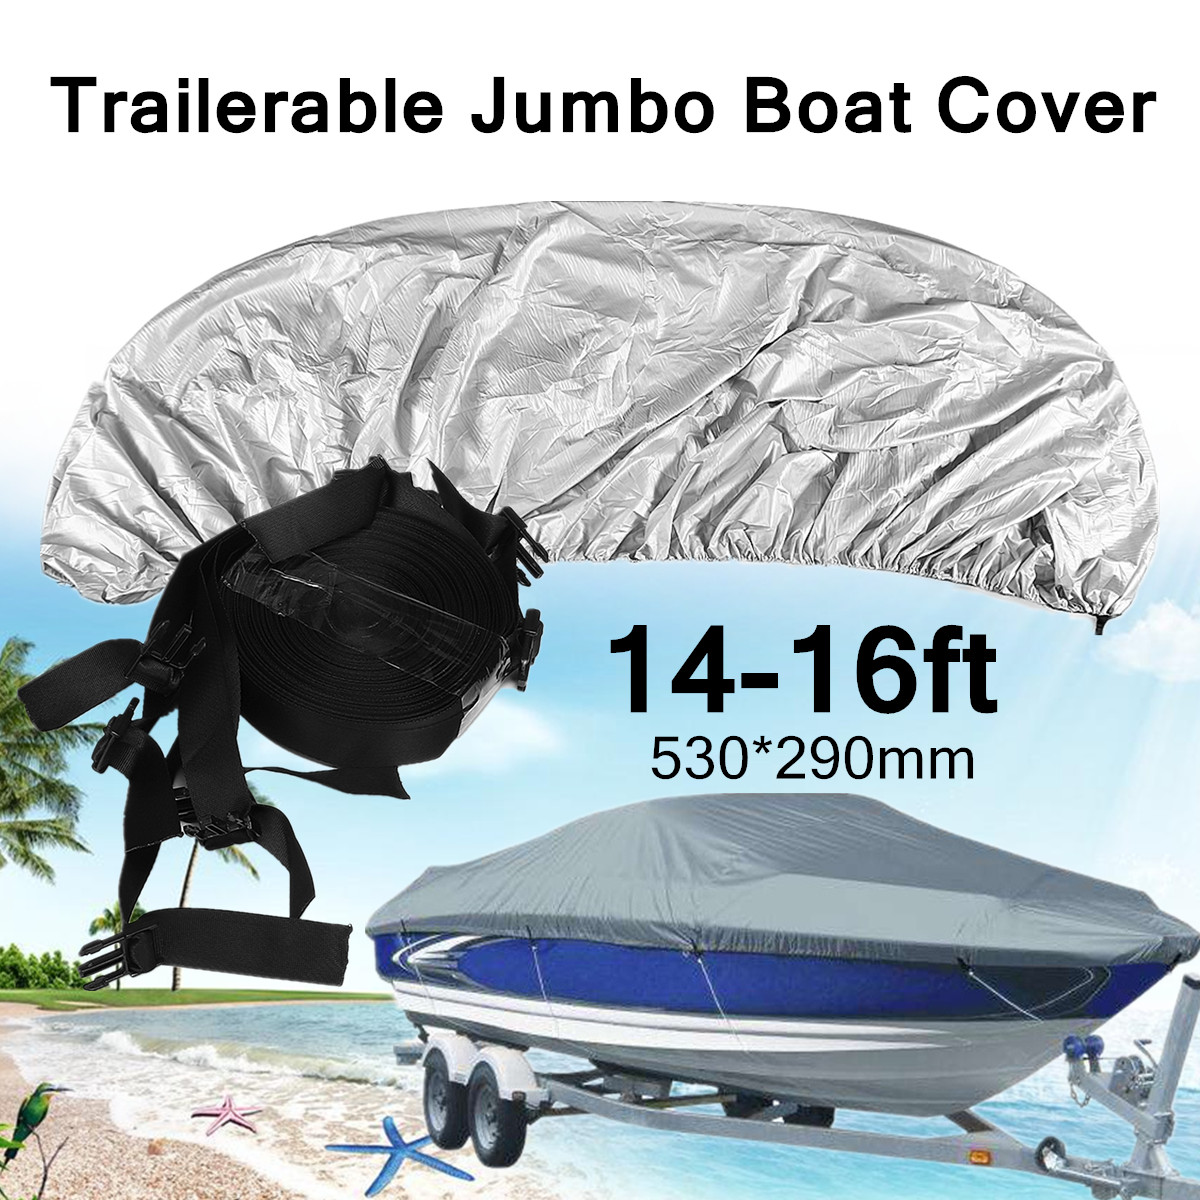 14-16ft 420D Trailerable Jumbo Boat Speedboat Cover Waterproof V-Hull 530*290mm Silver Grey UV Protected Double Needle Seams heavy duty 14 16ft 600d beam 90inch trailerable marine grade boat cover outdoor yacht boat suit waterproof uv protected black